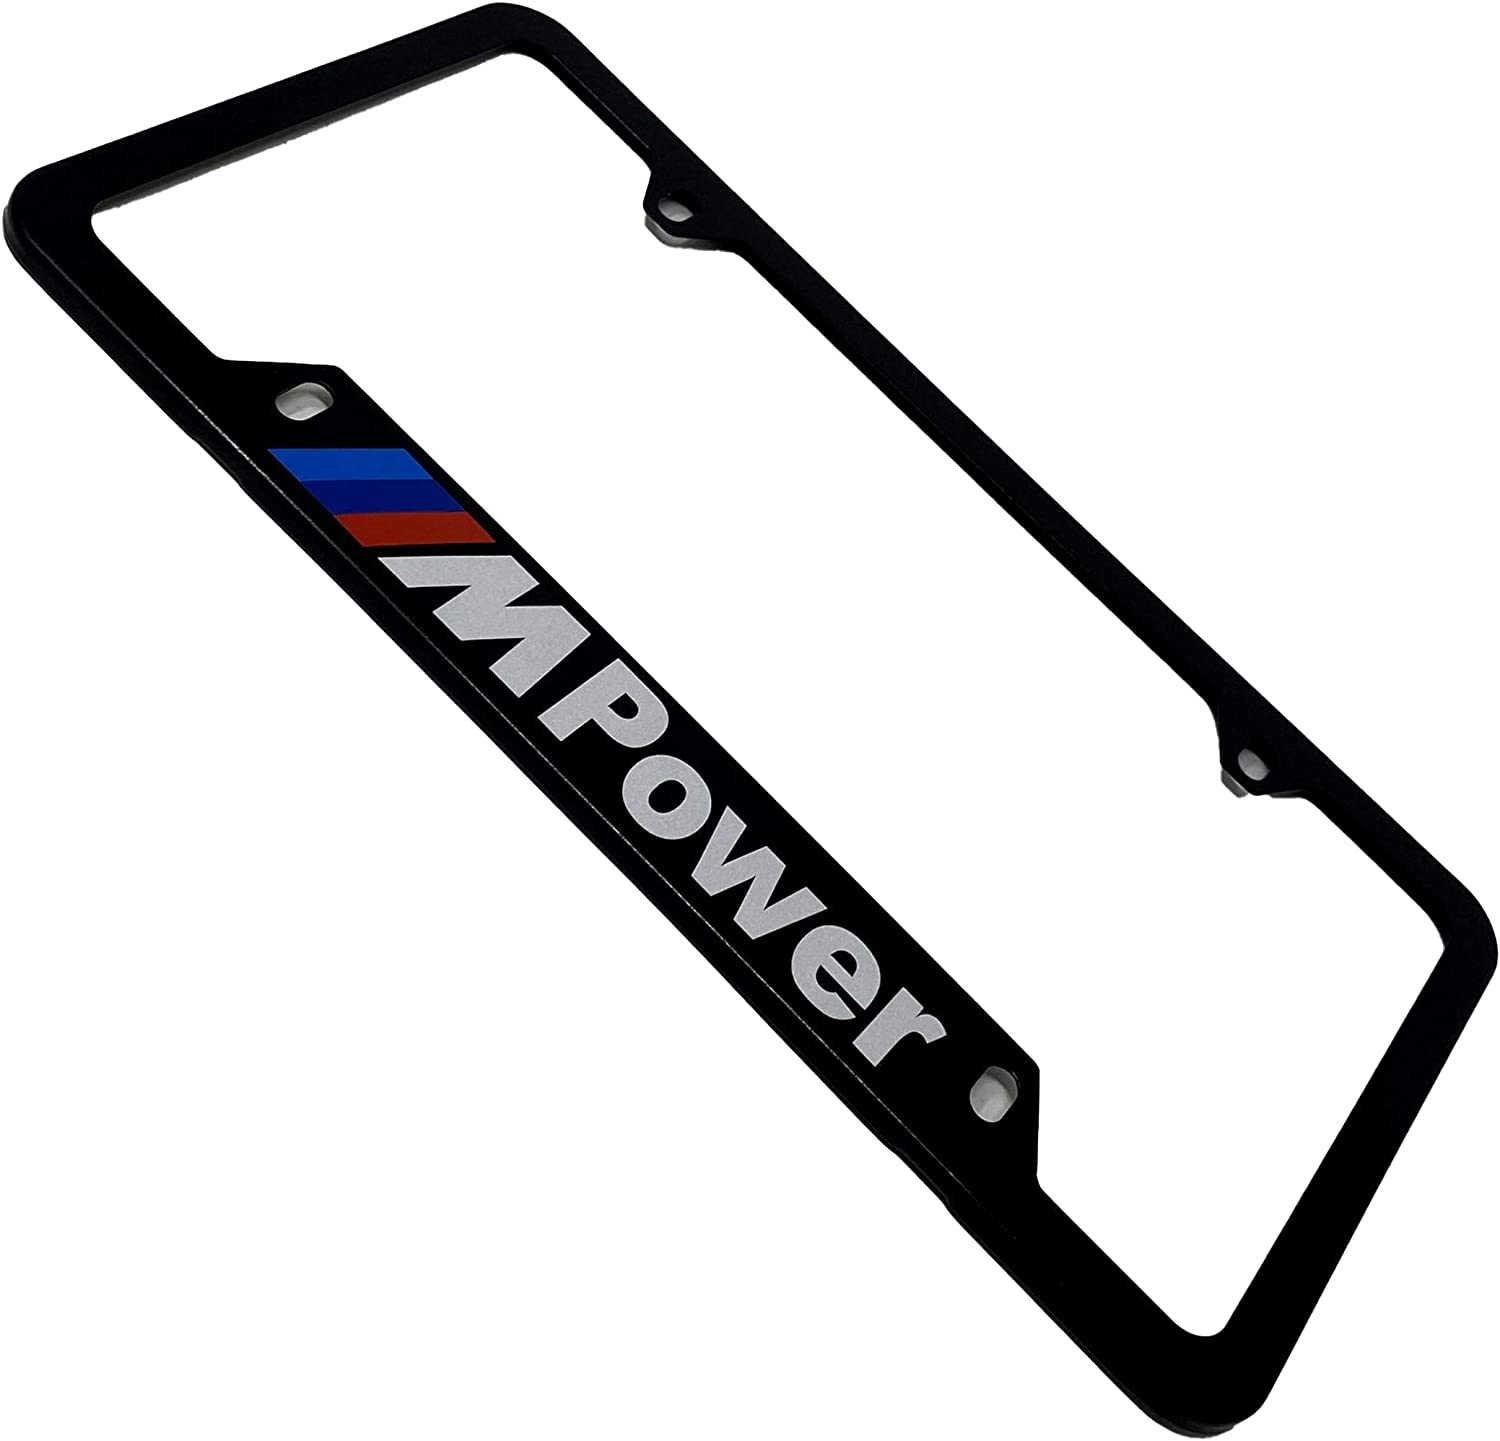 Black Pack of 1 License Plate Frame for M POWER Motorsport Performance M2 M3 M4 M5 M6 M7 M8 Series etc Universal Standard US /& Canada Plates with SCREW CAPS 4 Hole 12.2 x 6.3 Aluminium Rust Proof Luxury Weatherproof Cover RENGVO